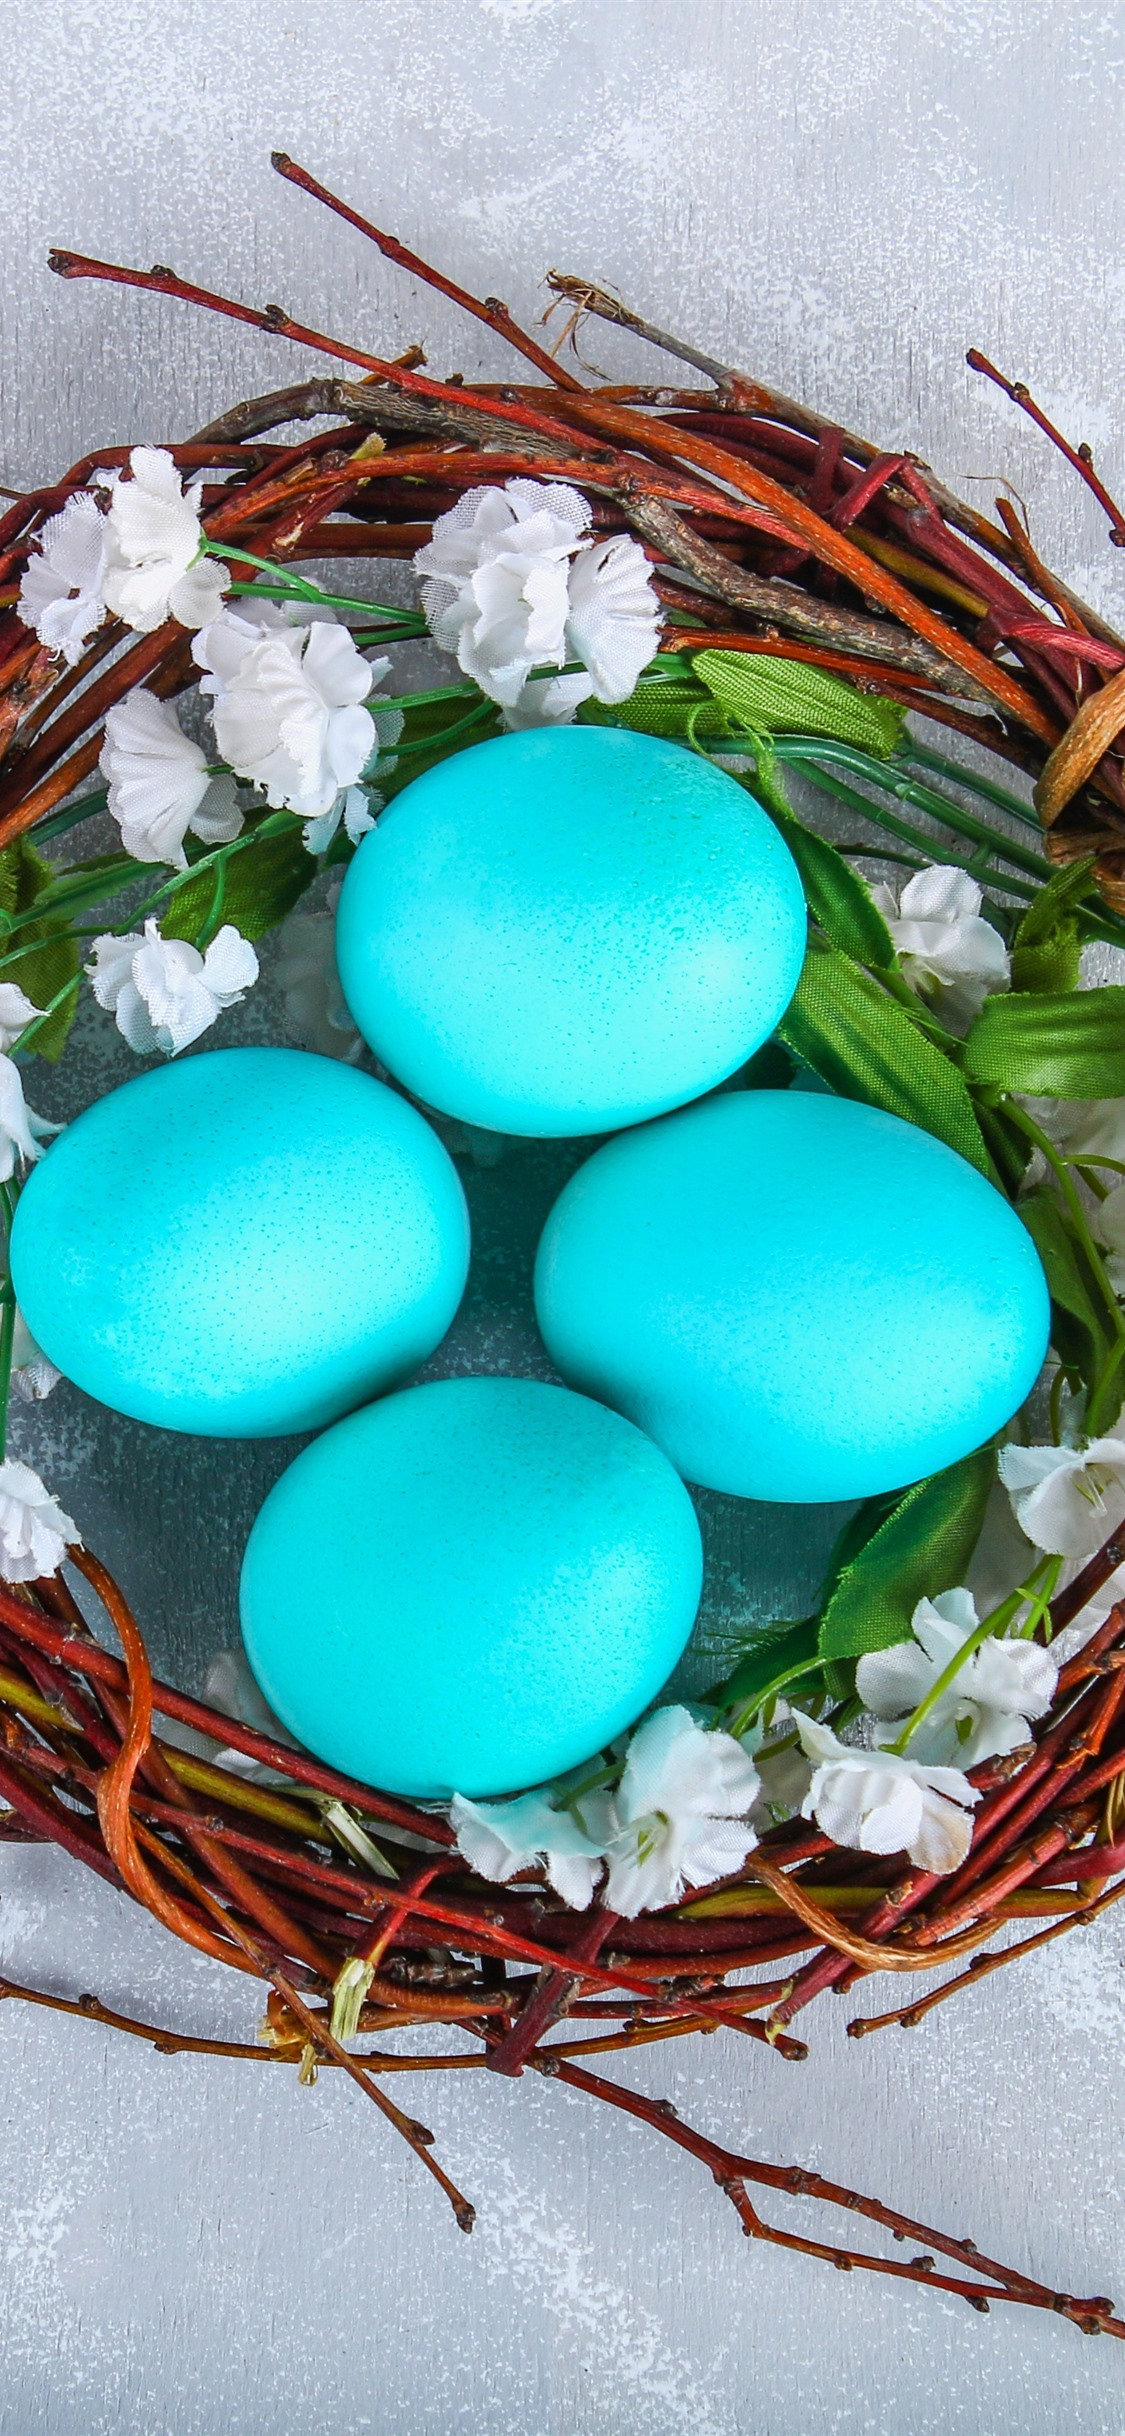 Blue Easter Eggs Nest 1242x2688 Iphone Xs Max Wallpaper